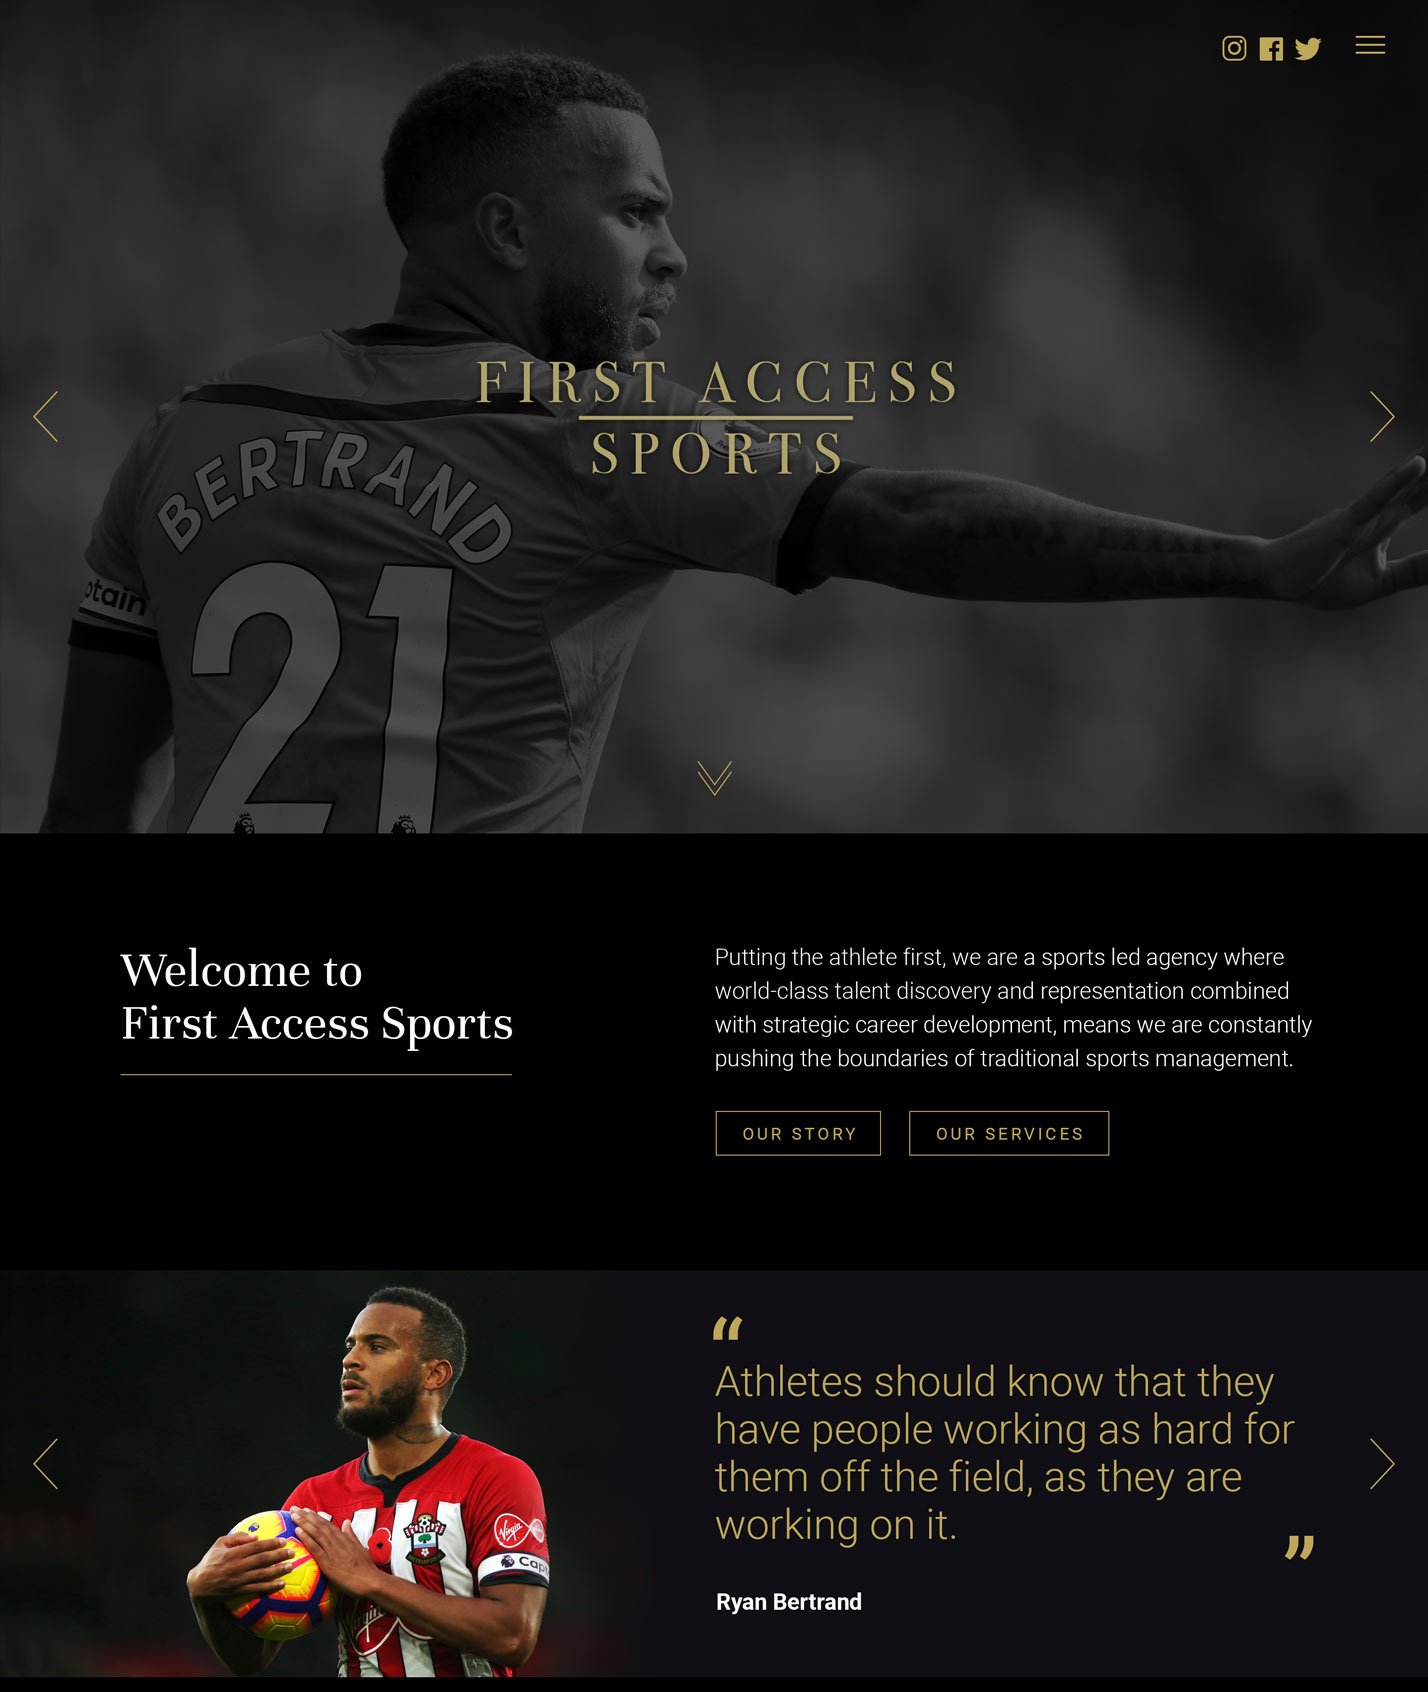 FAS - First Access Sports - work by Ever Increasing Circles